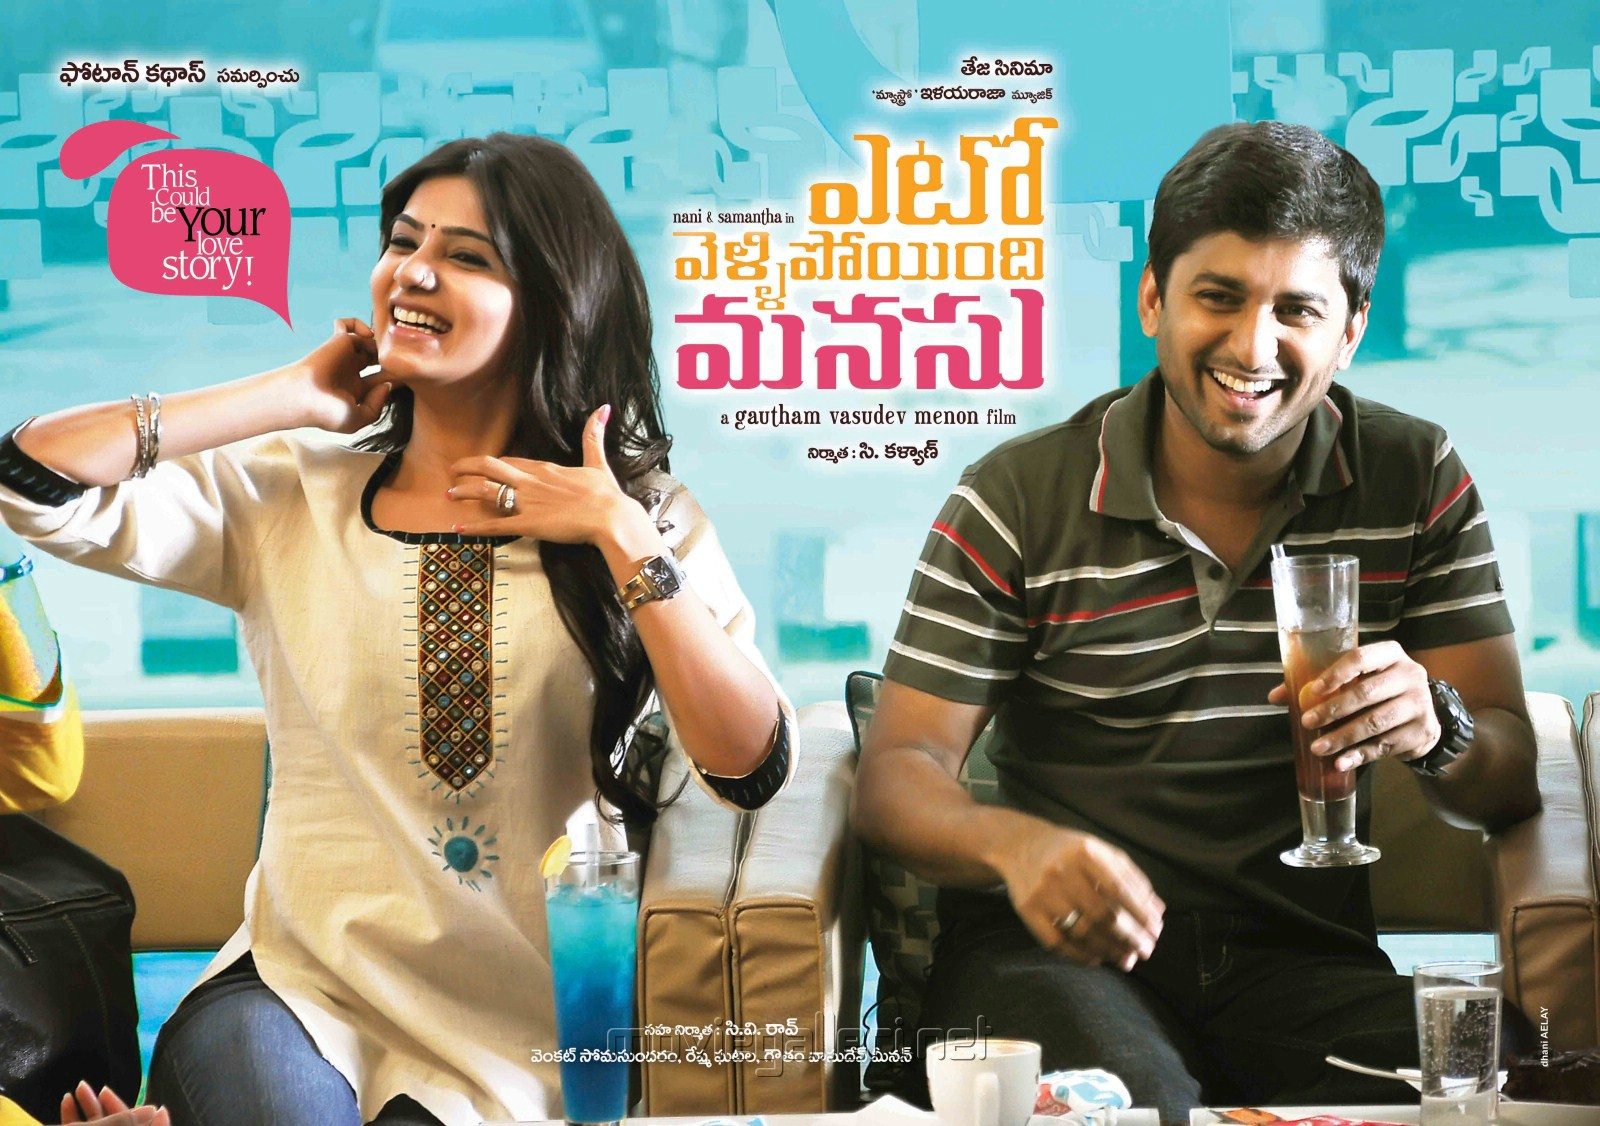 yeto vellipoyindi manasu movie photos, images and wallpapers